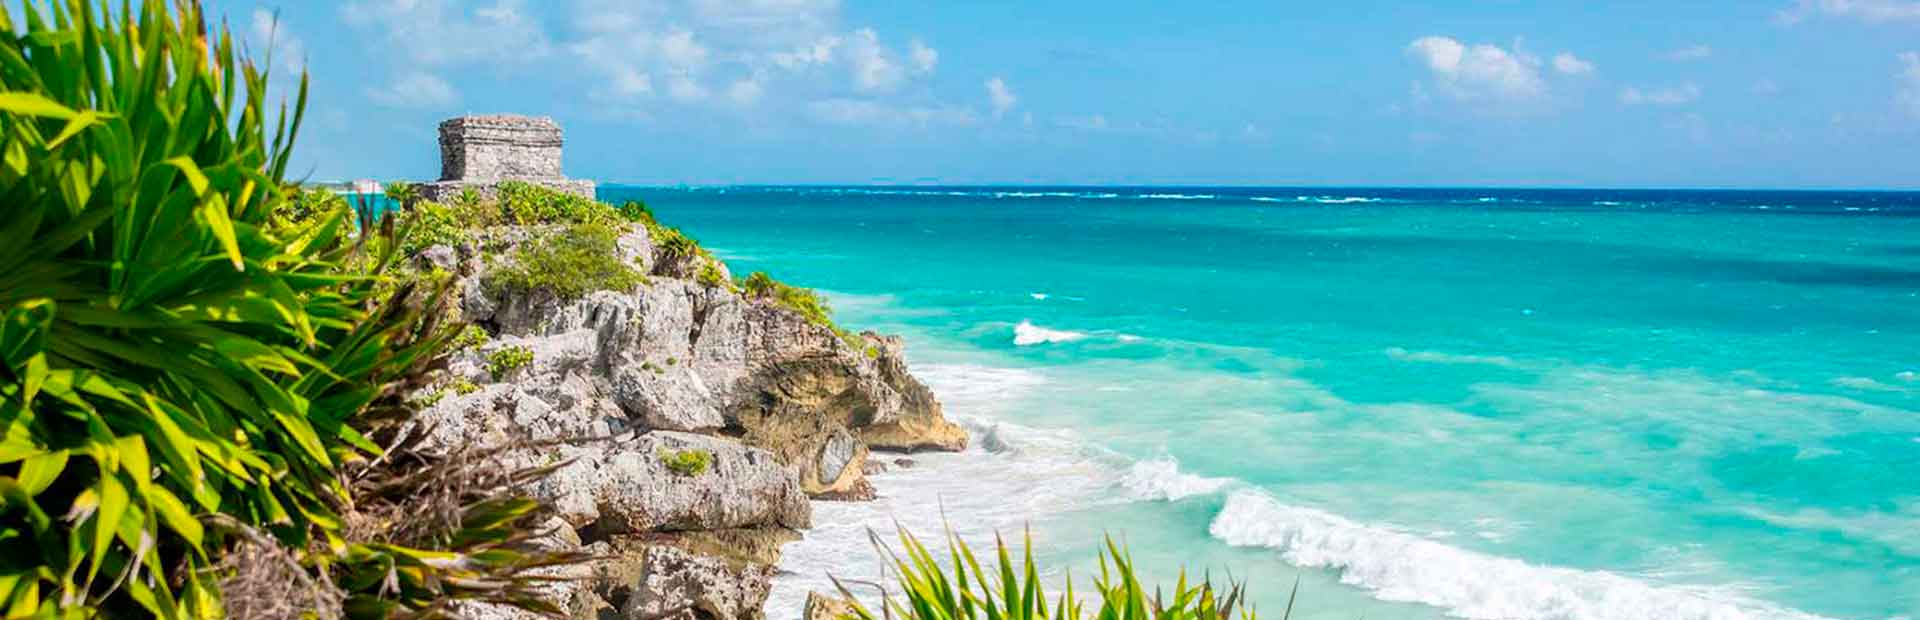 Mayan land with Seaport Credit